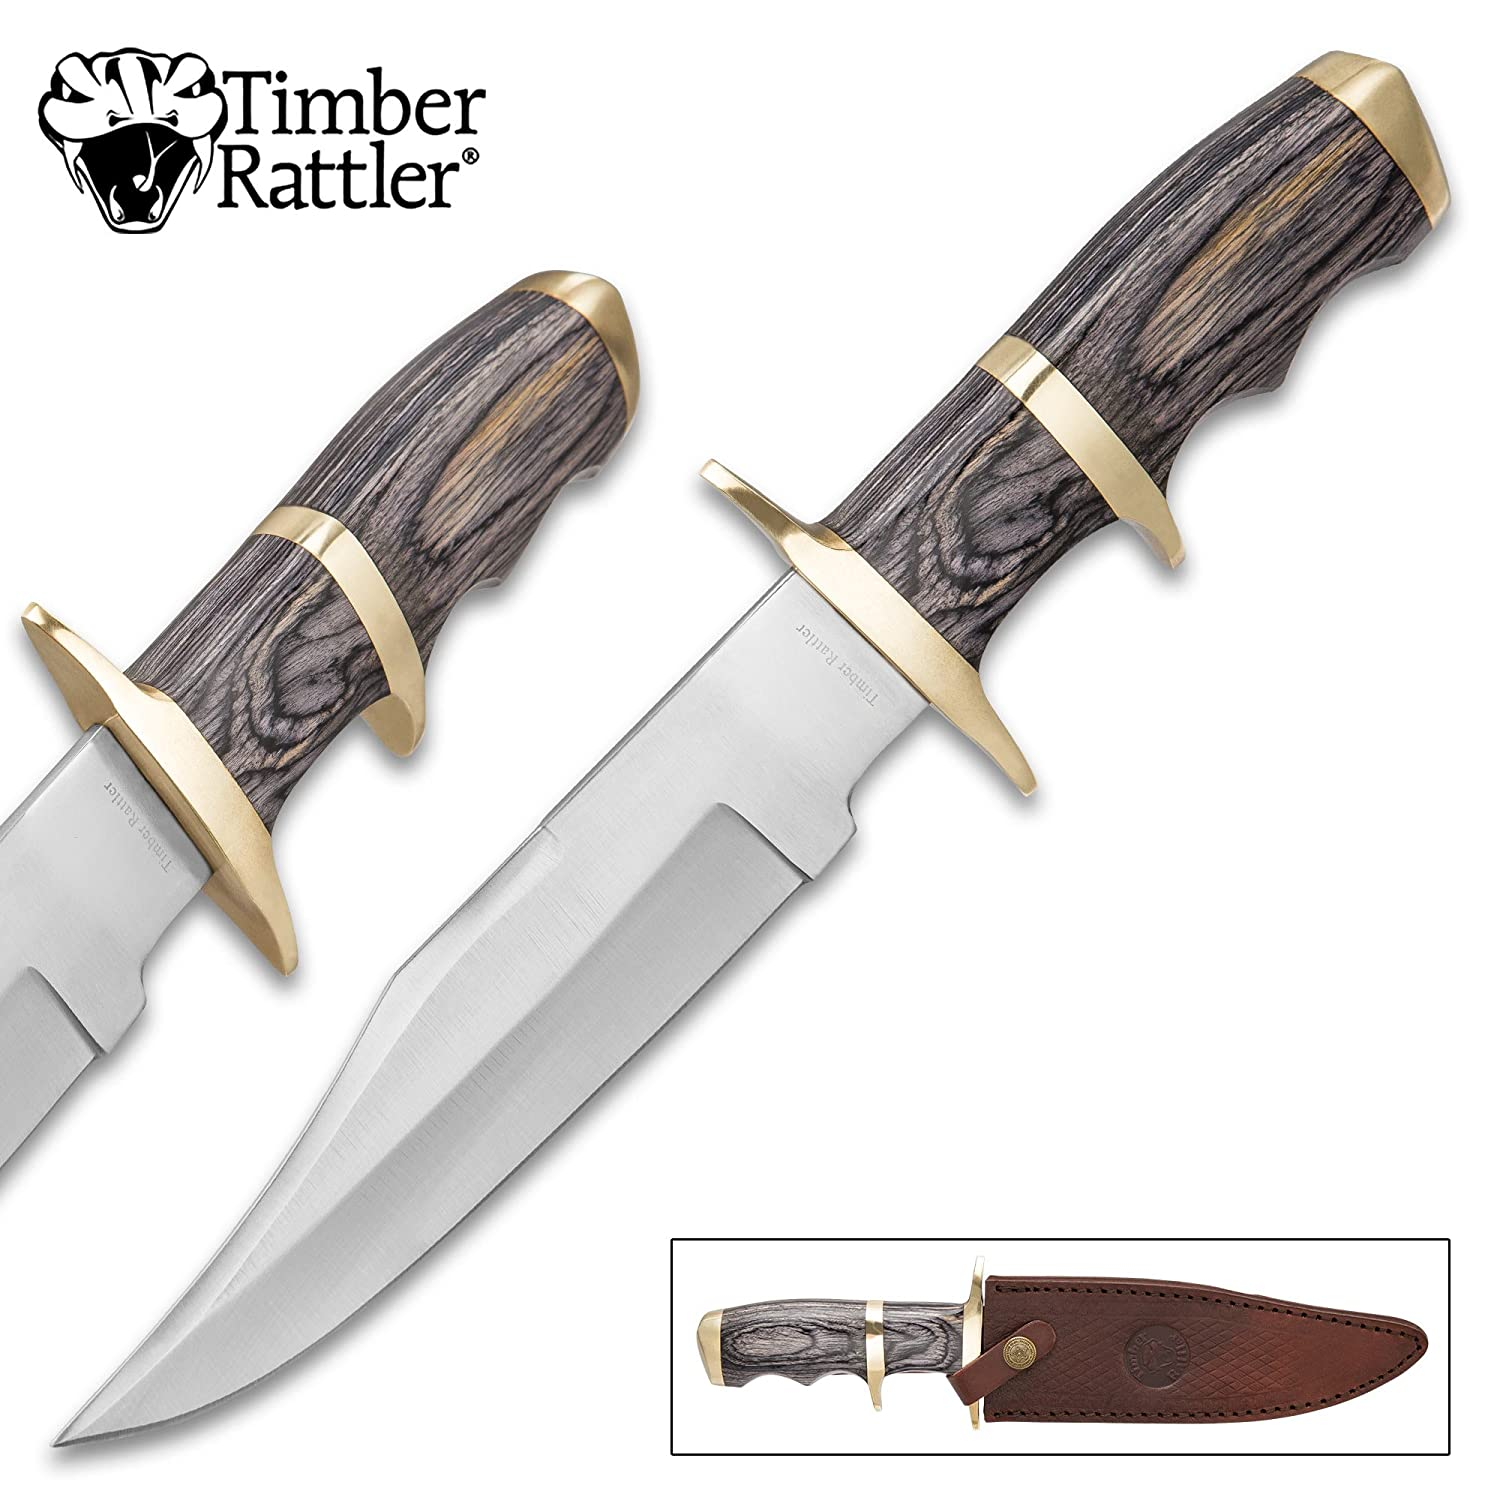 Timber Rattler Buffalo Joe Fixed Blade Knife with Sheath